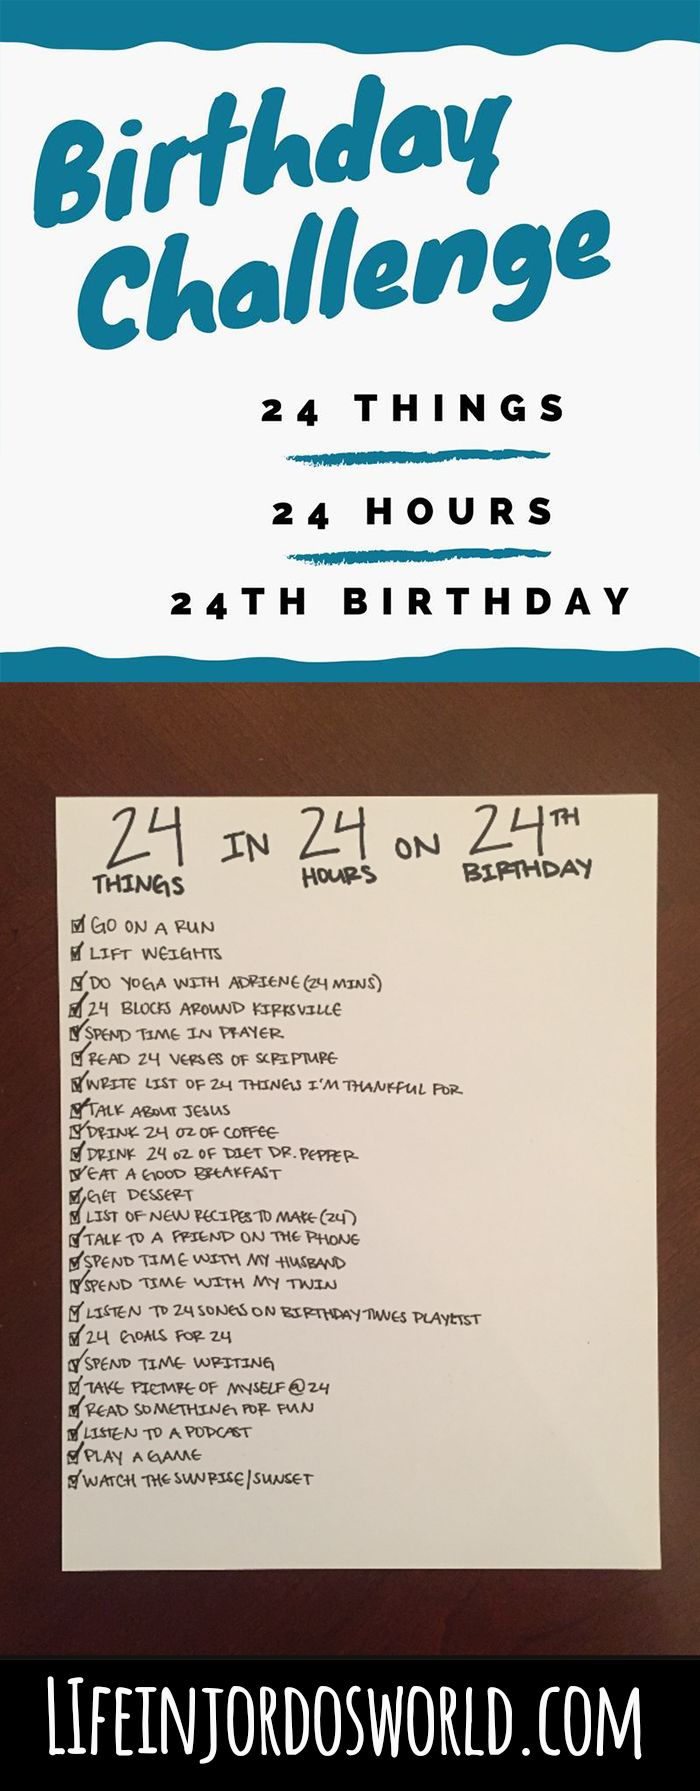 The 24th birthday challenge: 24 things to do in 24 hours on your 24th birthday!